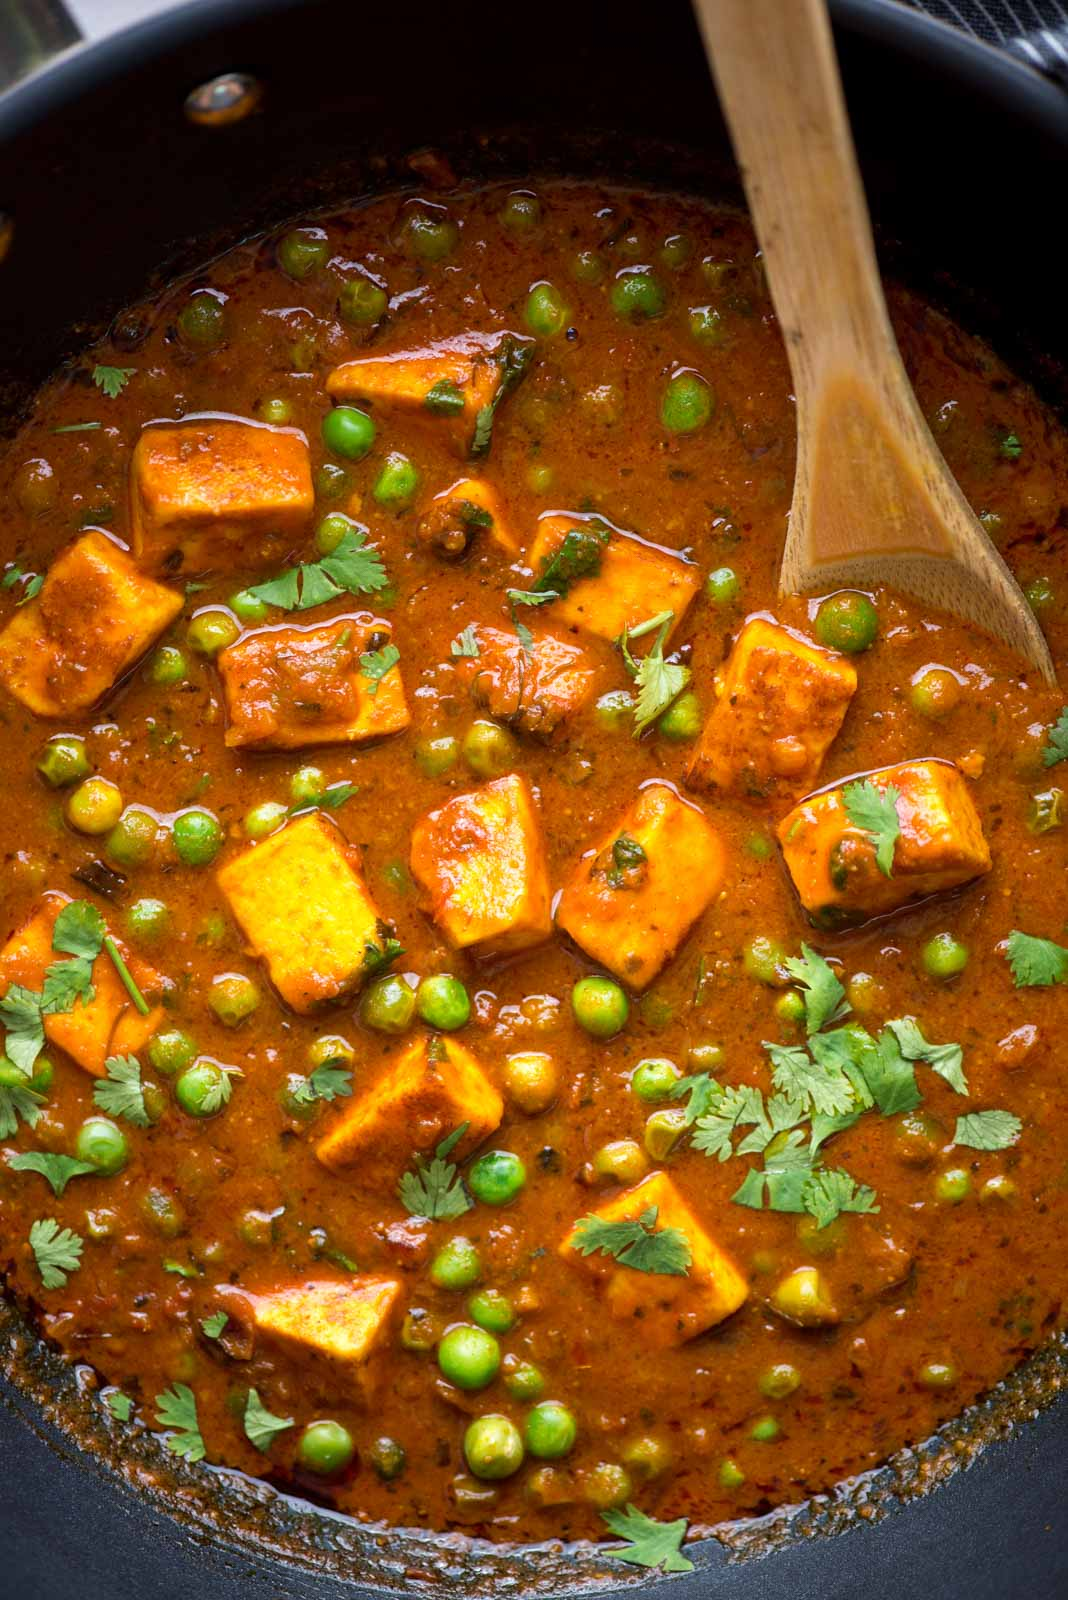 Soft paneer and matar in a flavorful onion tomato gravy, this recipe will remind you of your favorite restaurant for sure. Without any cream or cashew, this curry still is thick and perfect to scoop with roti or naan.